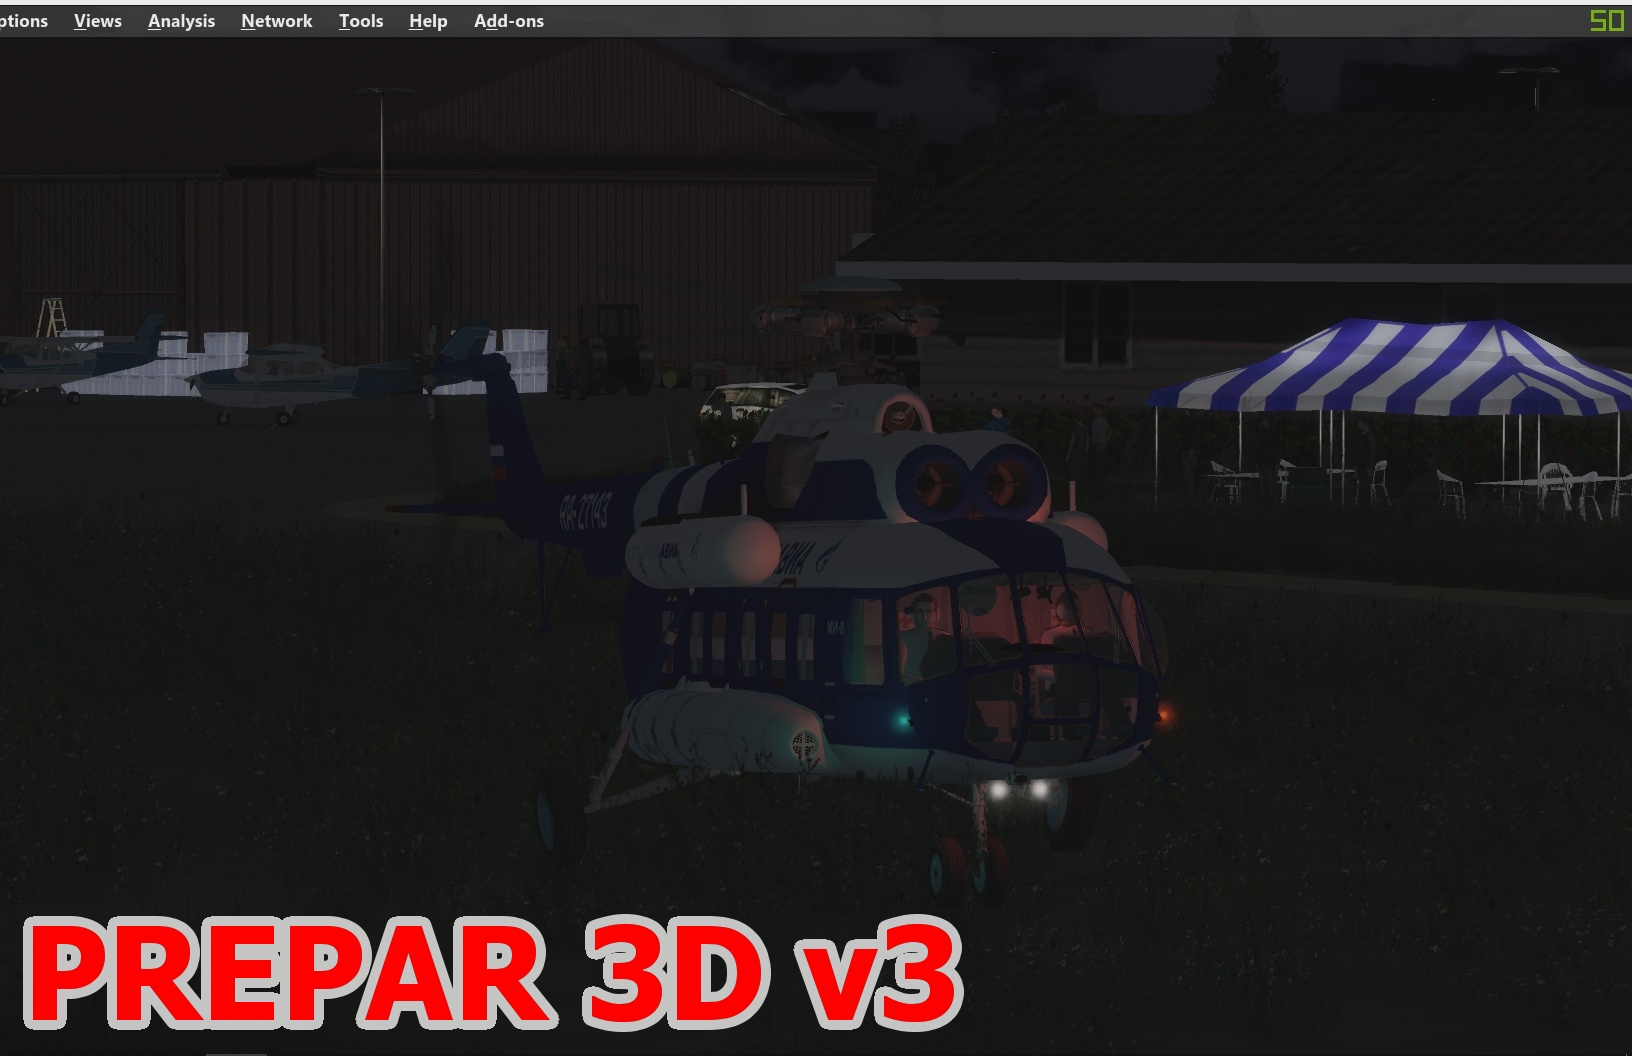 MI-8 PACKAGE-FOR PREPAR 3D v3